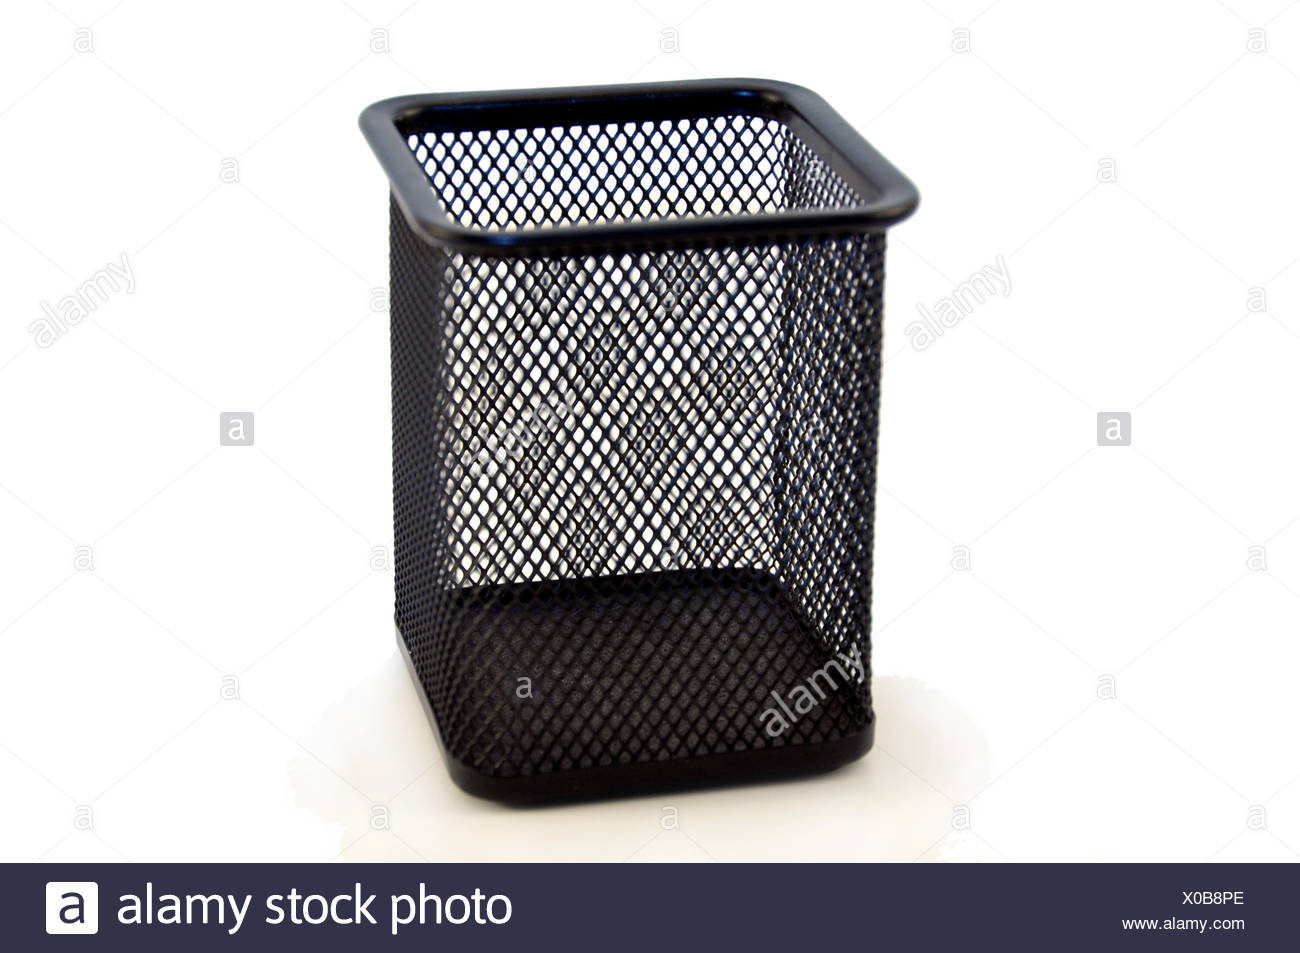 pencil holder stock photos pencil holder stock images alamy